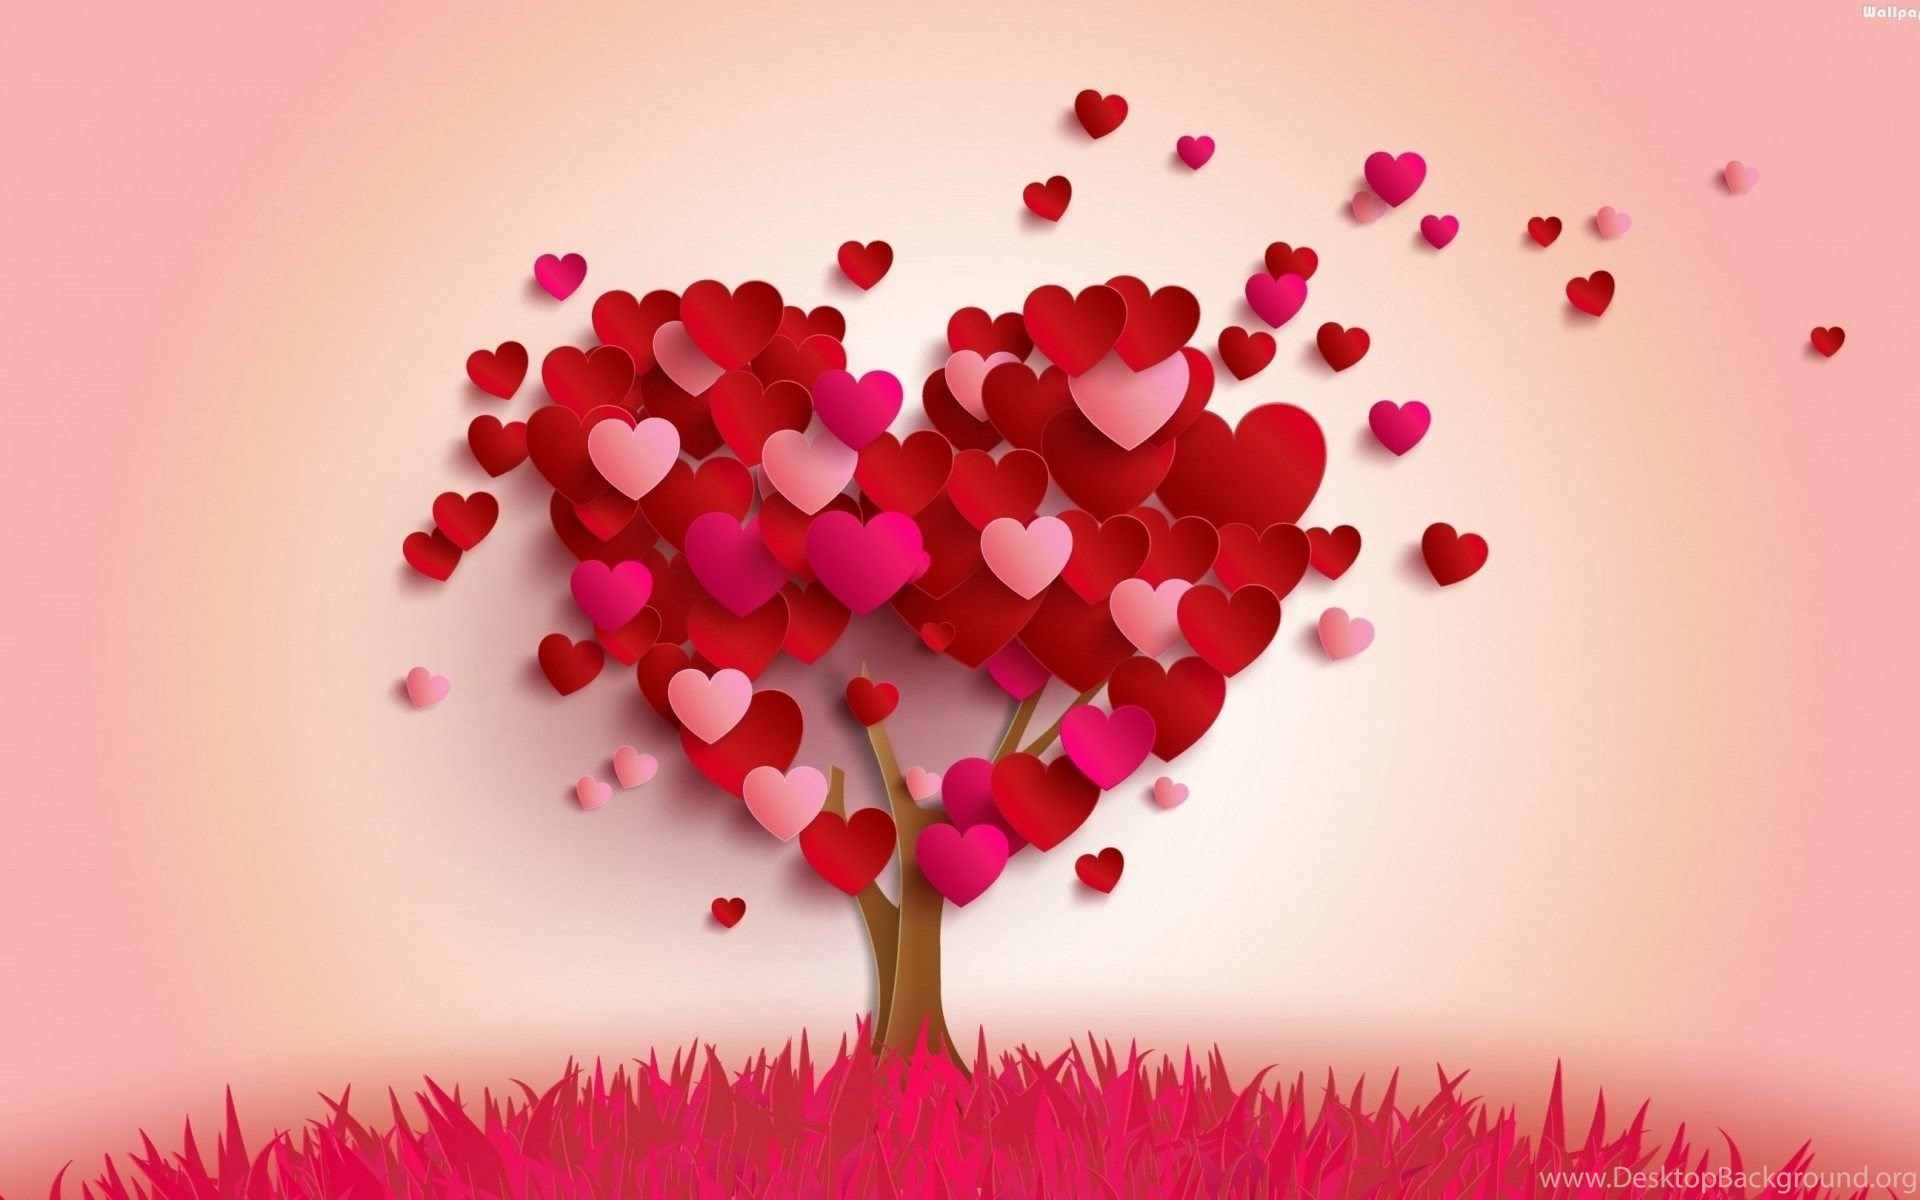 cute Love Hd Wallpapers For Laptop : cute Wallpaper: Love Desktop Wallpapers Wallpapers HD Desktop ... Desktop Background